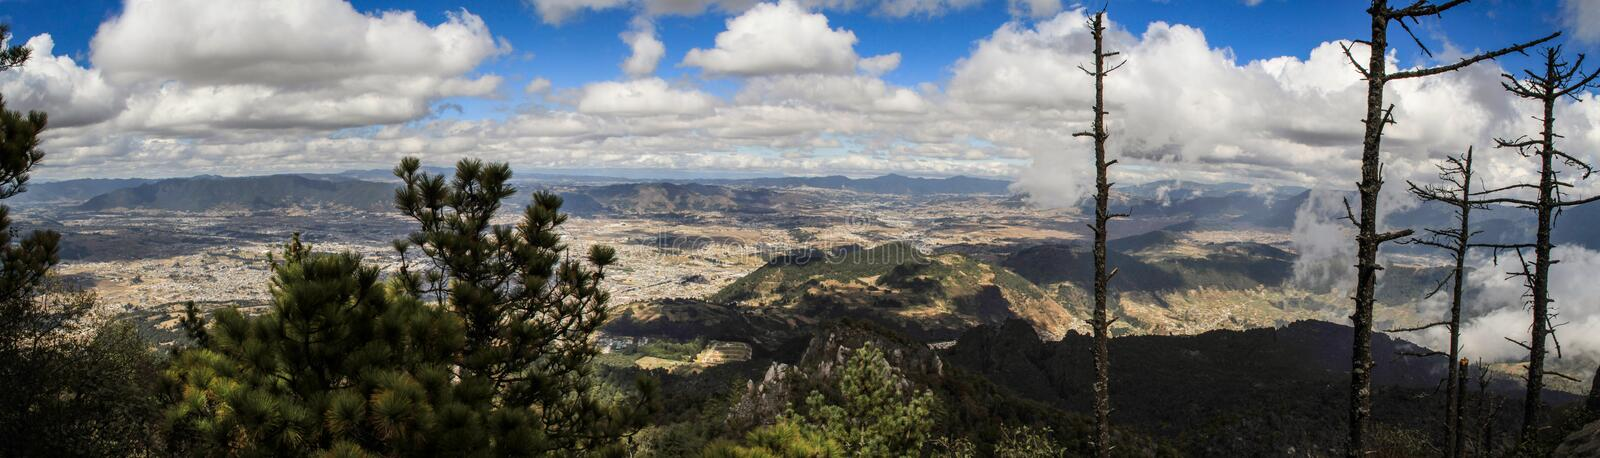 Panoramic view on Quetzaltenango and the mountains around, from the Cerro Quemado Summit, Quetzaltenango, Altiplano, Guatemala. Quetzaltenango, also known by its royalty free stock photo